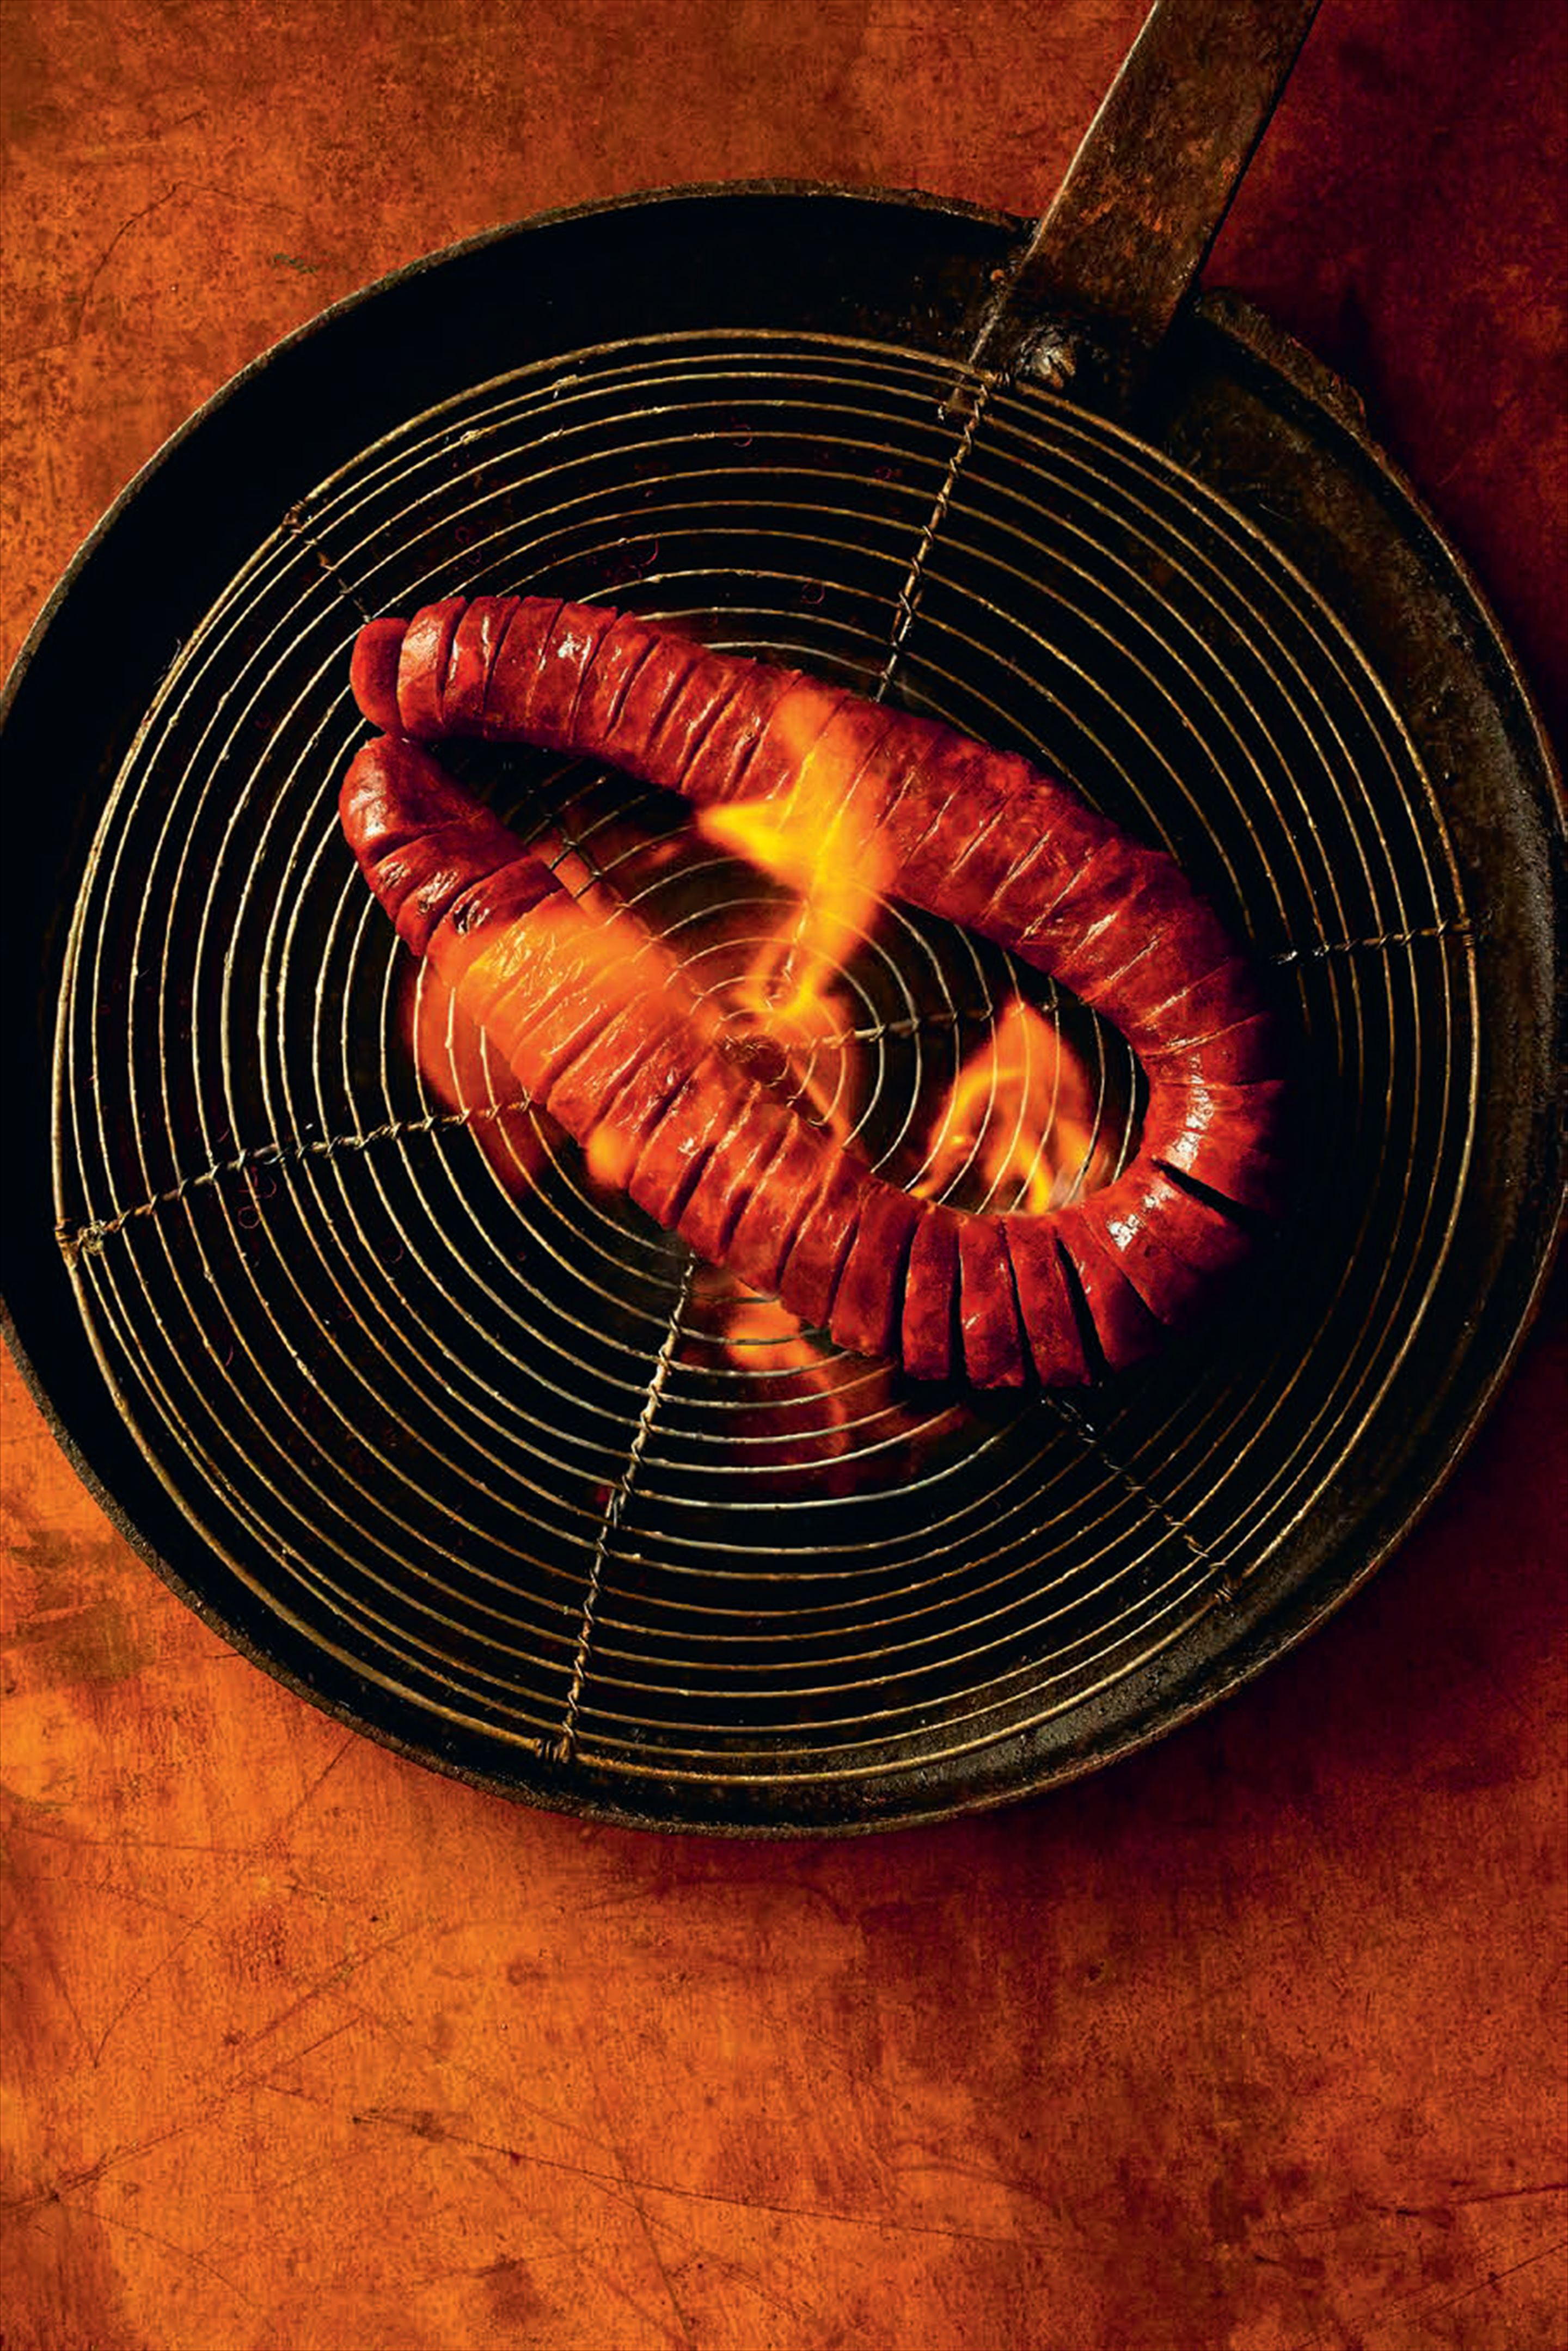 Flaming chorizo